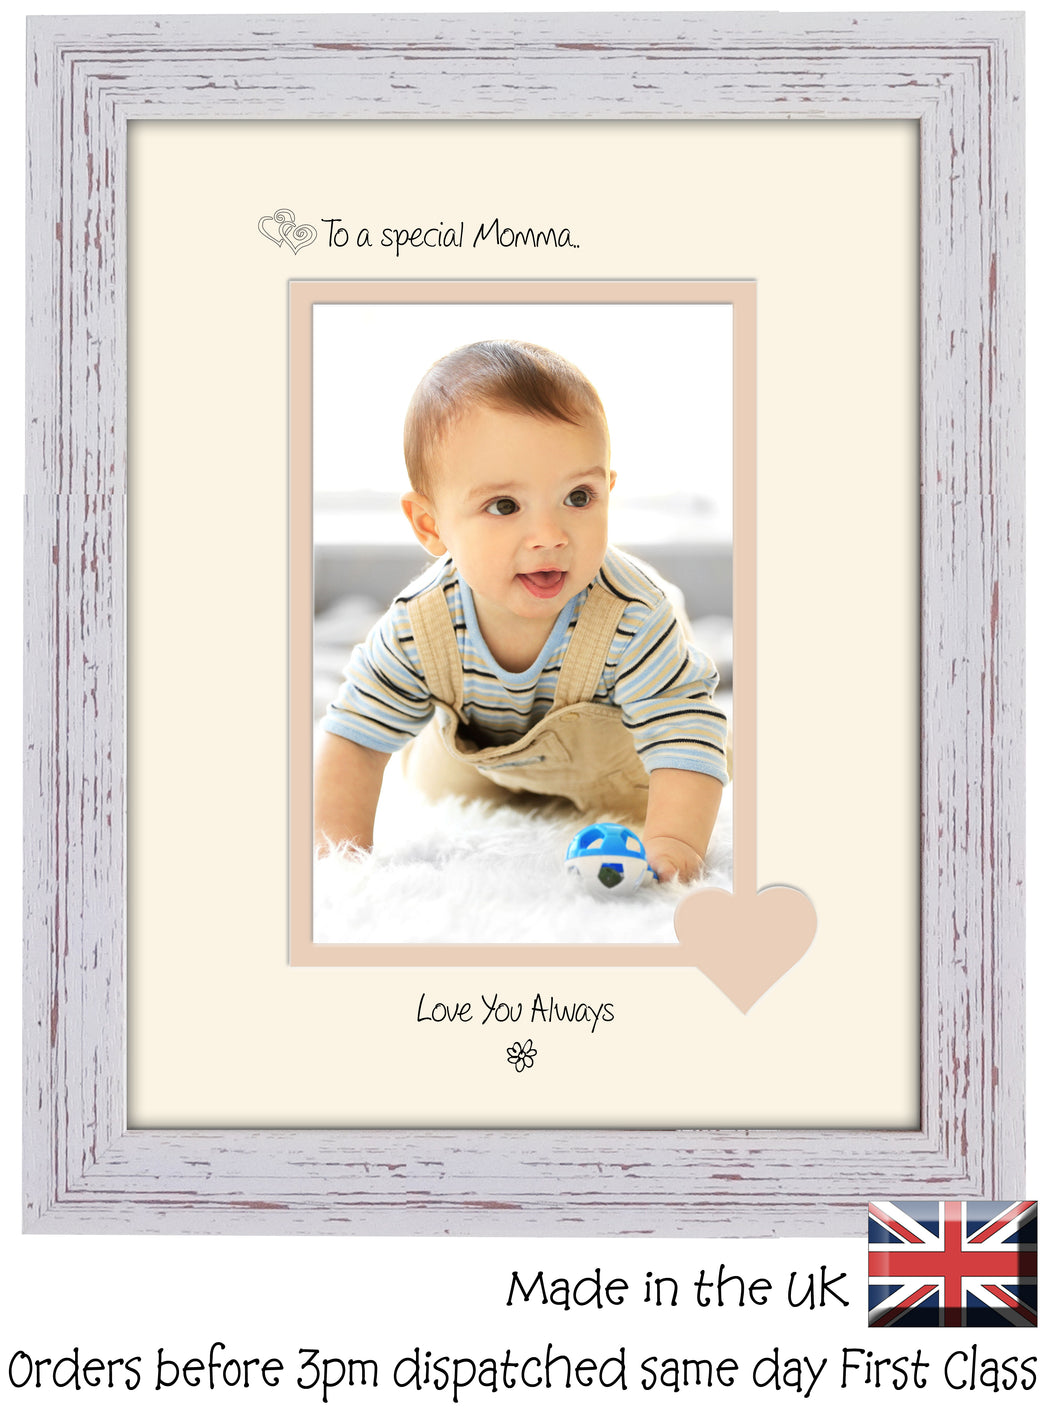 Momma Photo Frame - To a Special Momma... Love you Always Portrait photo frame 6